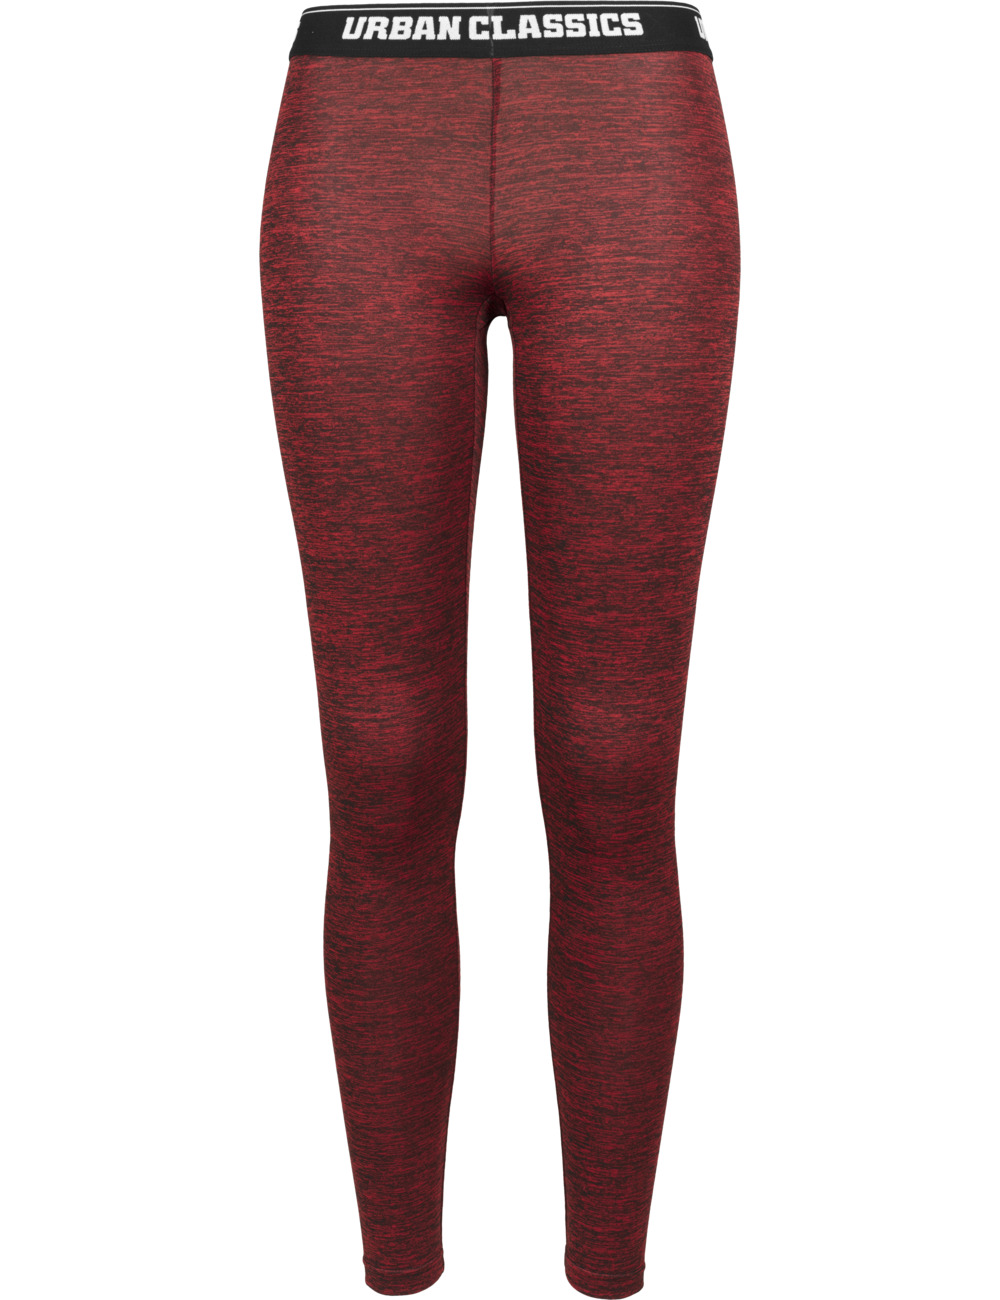 urban-classics-ladies-active-melange-logo-leggings